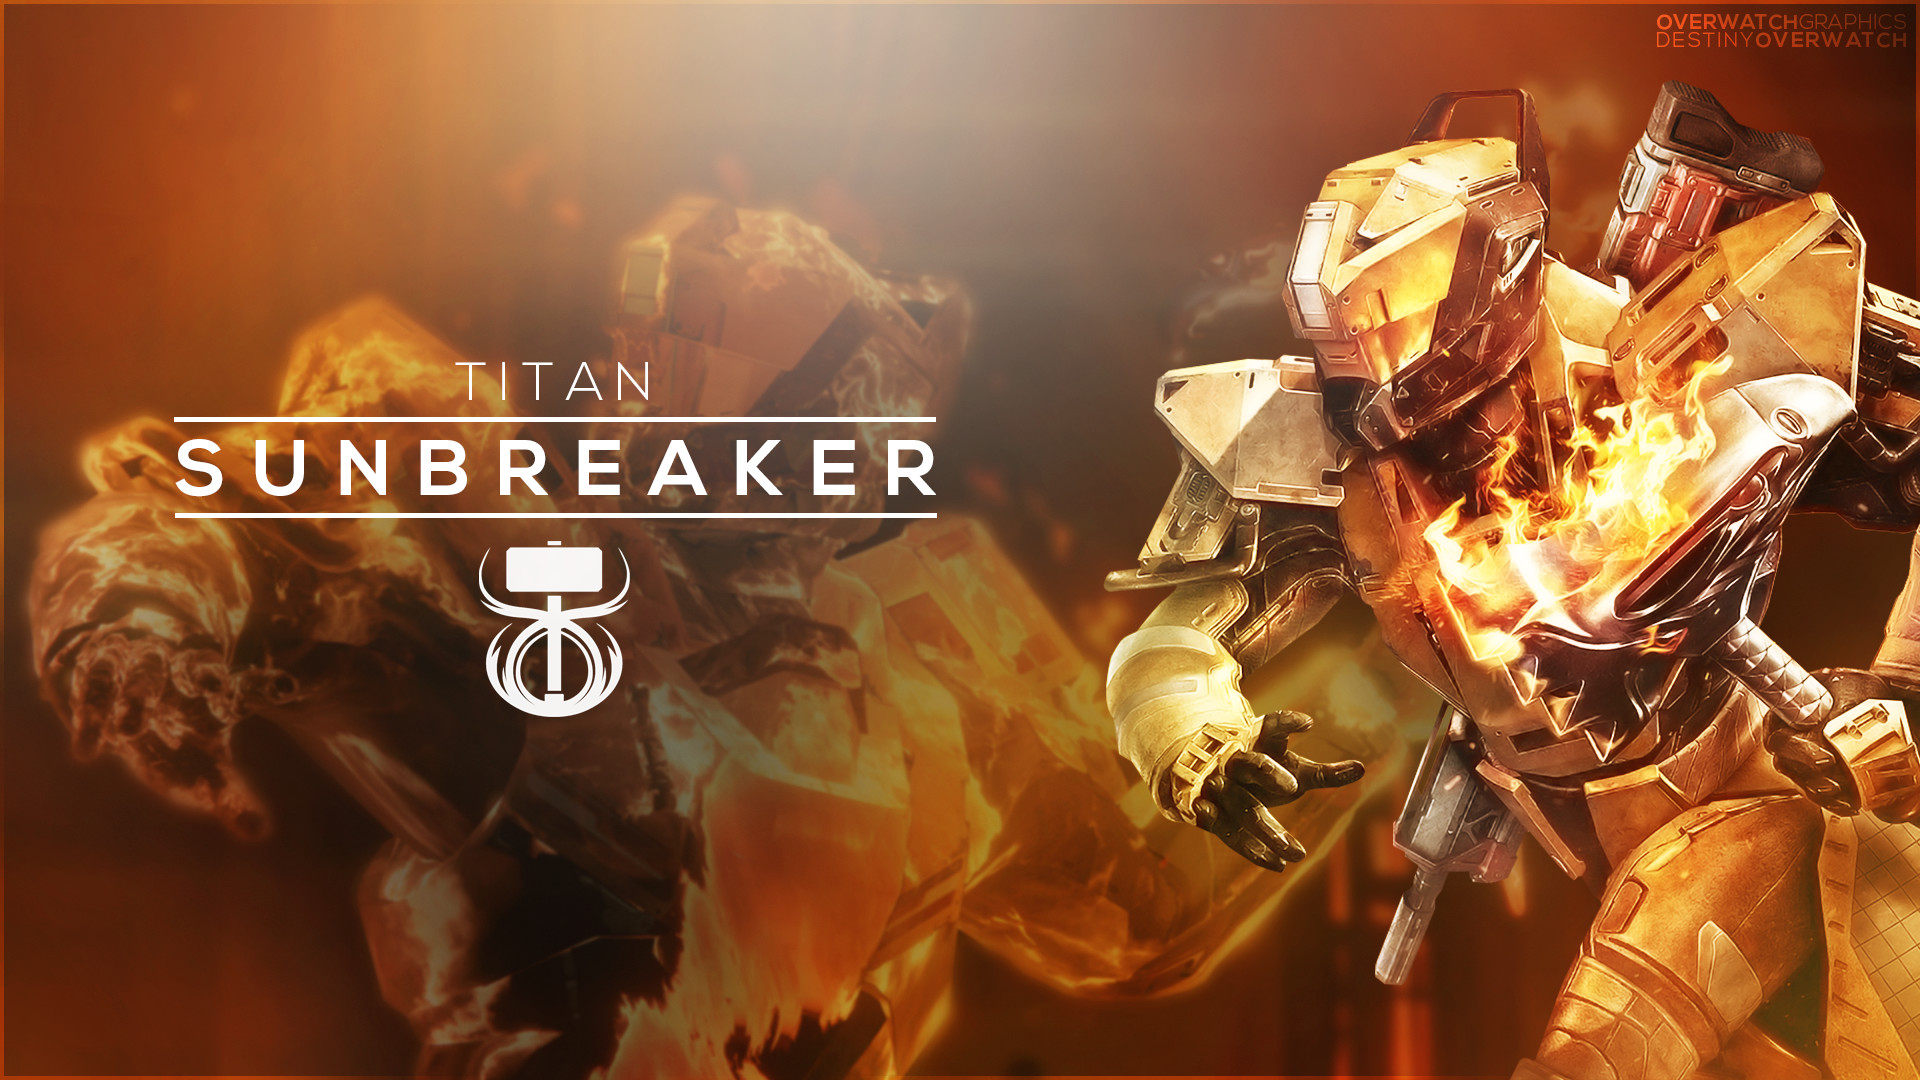 1920x1080 Destiny the Game - Sunbreaker Wallpaper by OverwatchGraphics